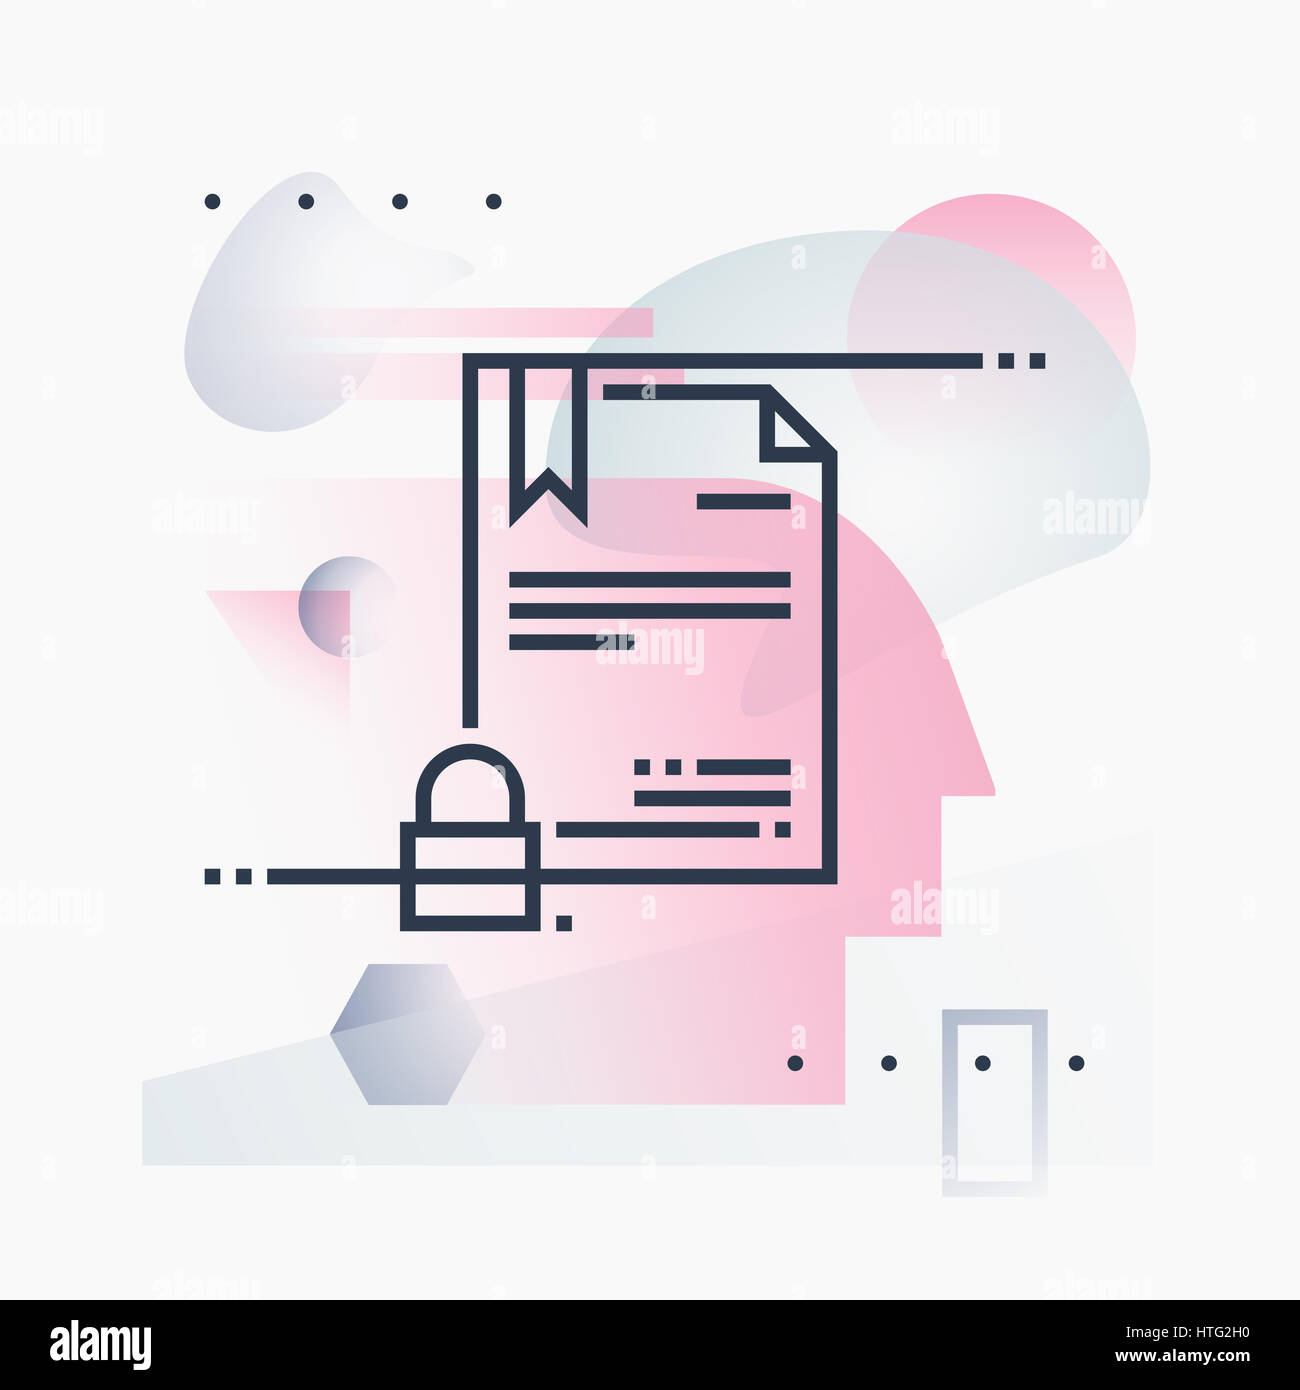 Digital certificate security, online papers technology. Abstract illustration concept. - Stock Image